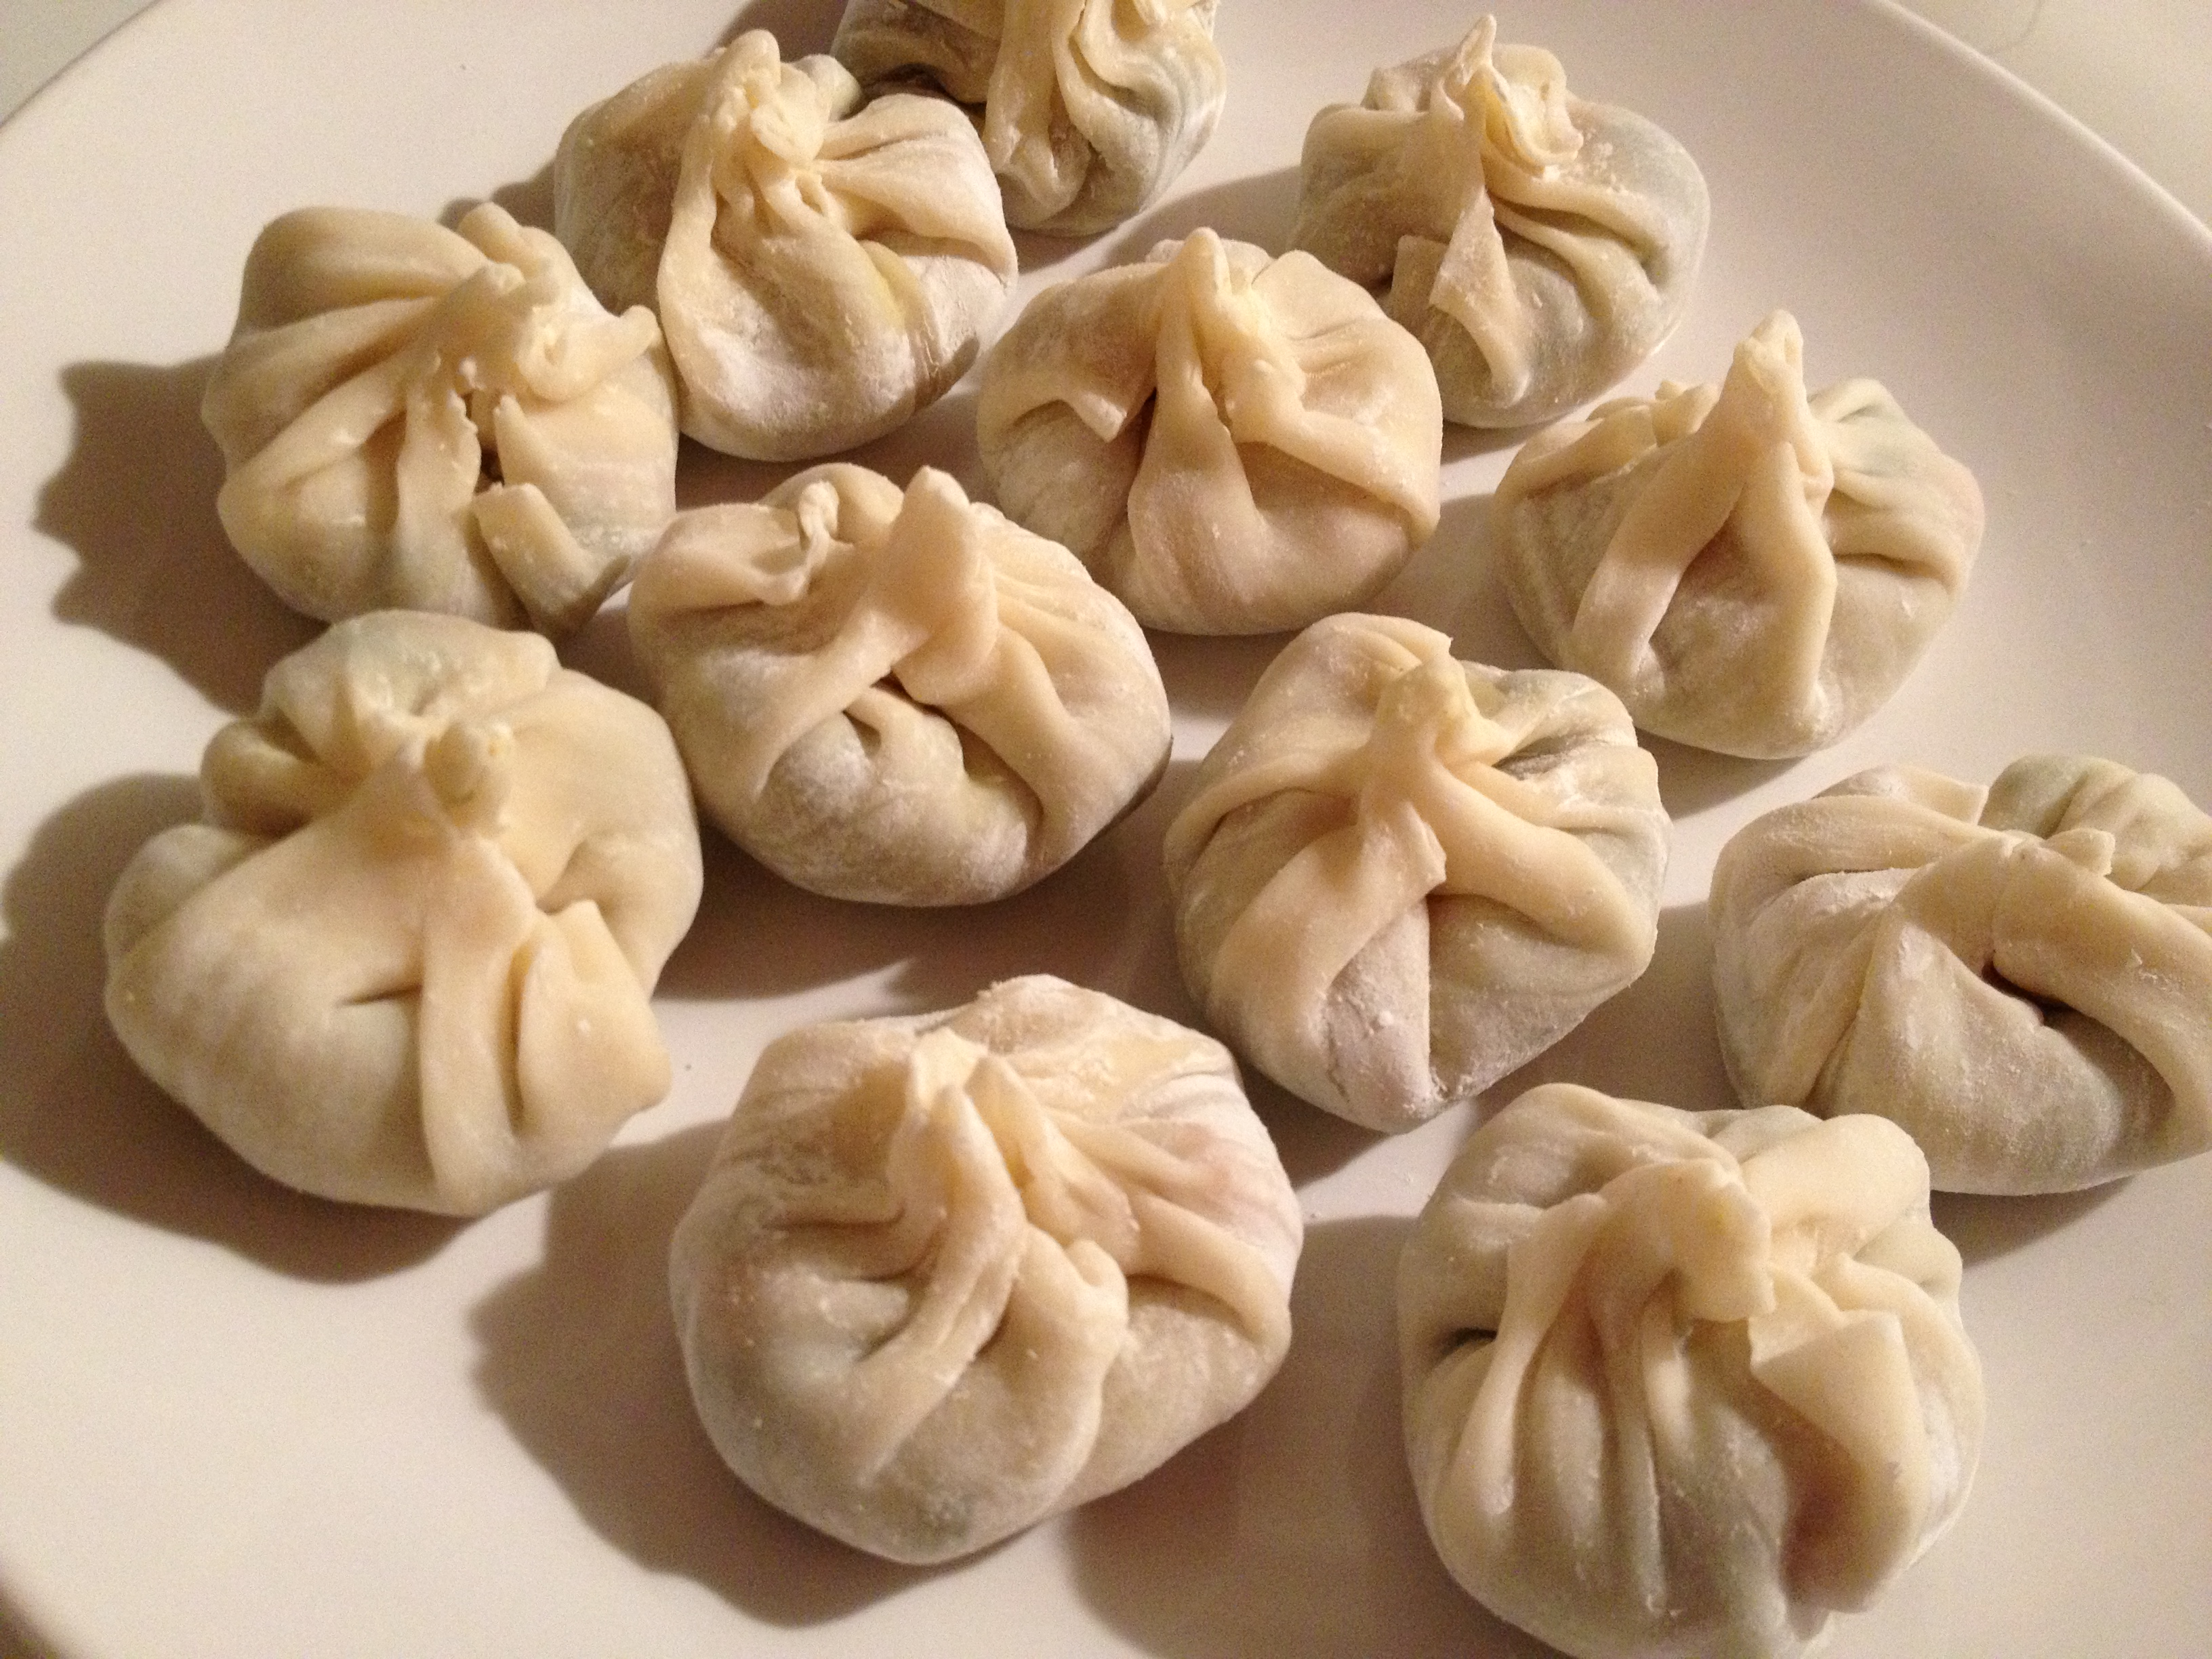 ... Momos (Himalayan Dumpling) | The search for the world's best dumplings